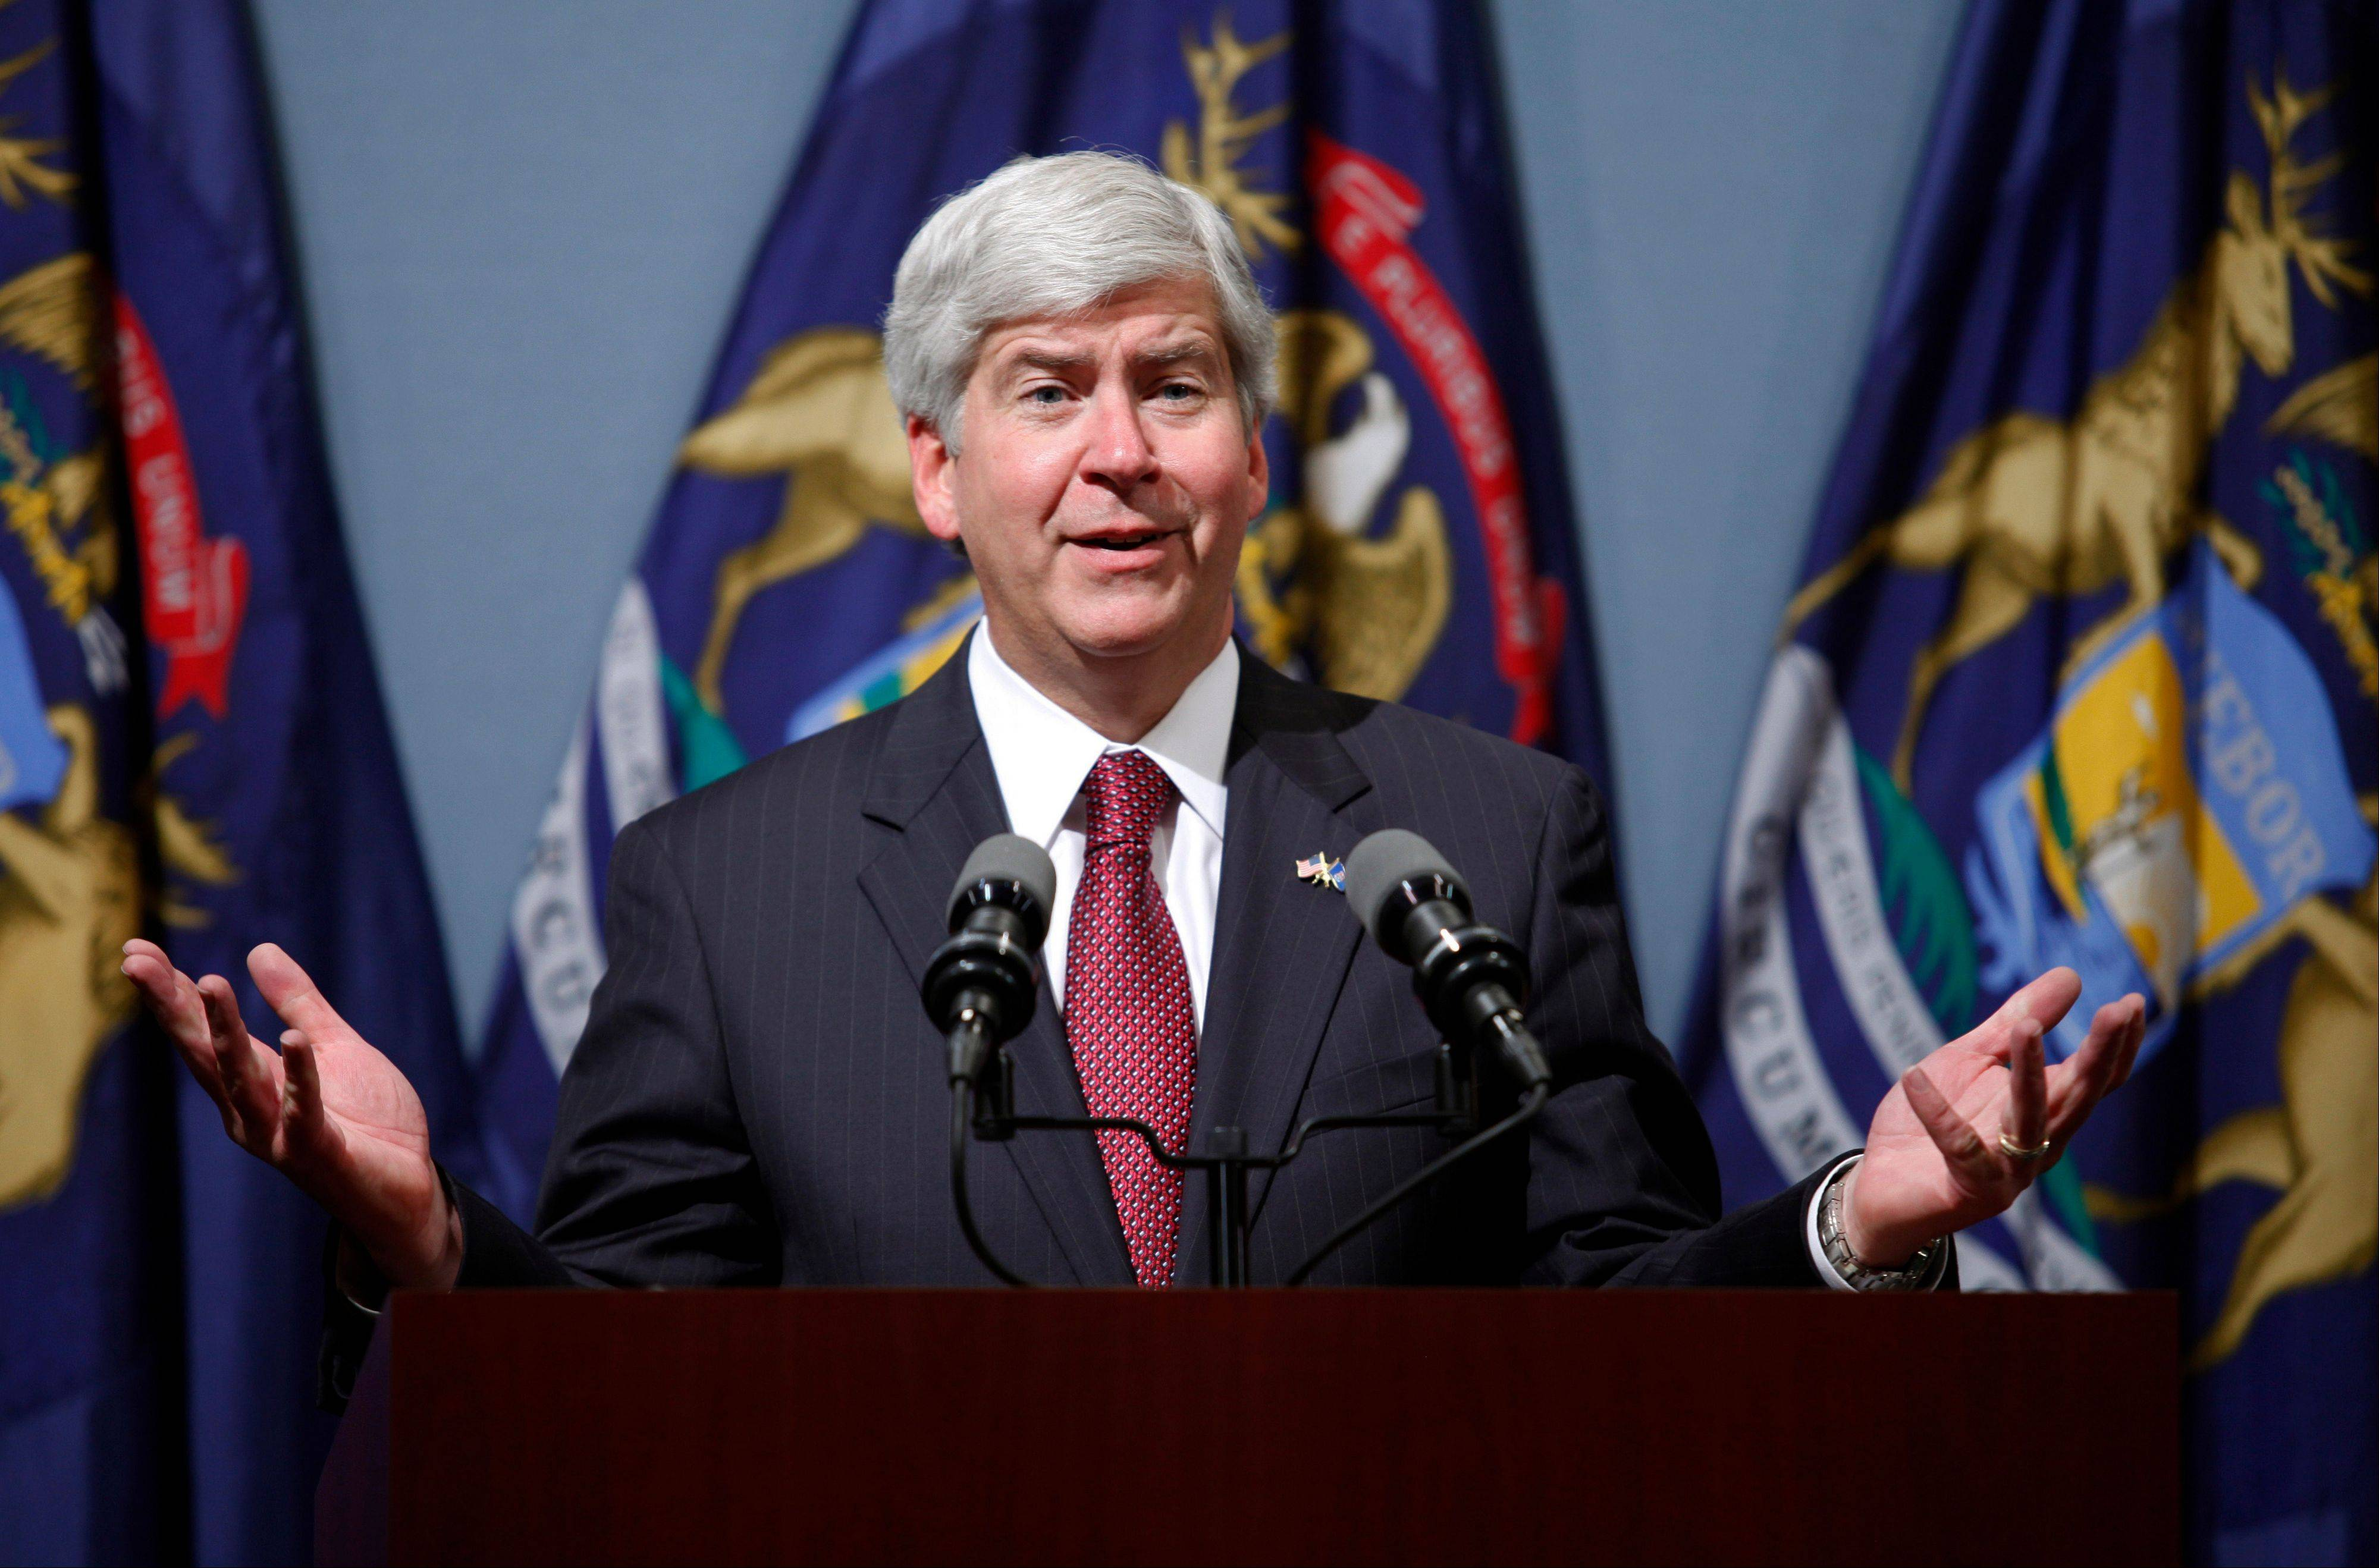 Michigan Gov. Rick Snyder gave his blessing to emergency manager Kevyn Orr�s decision to file for bankruptcy for Detroit.